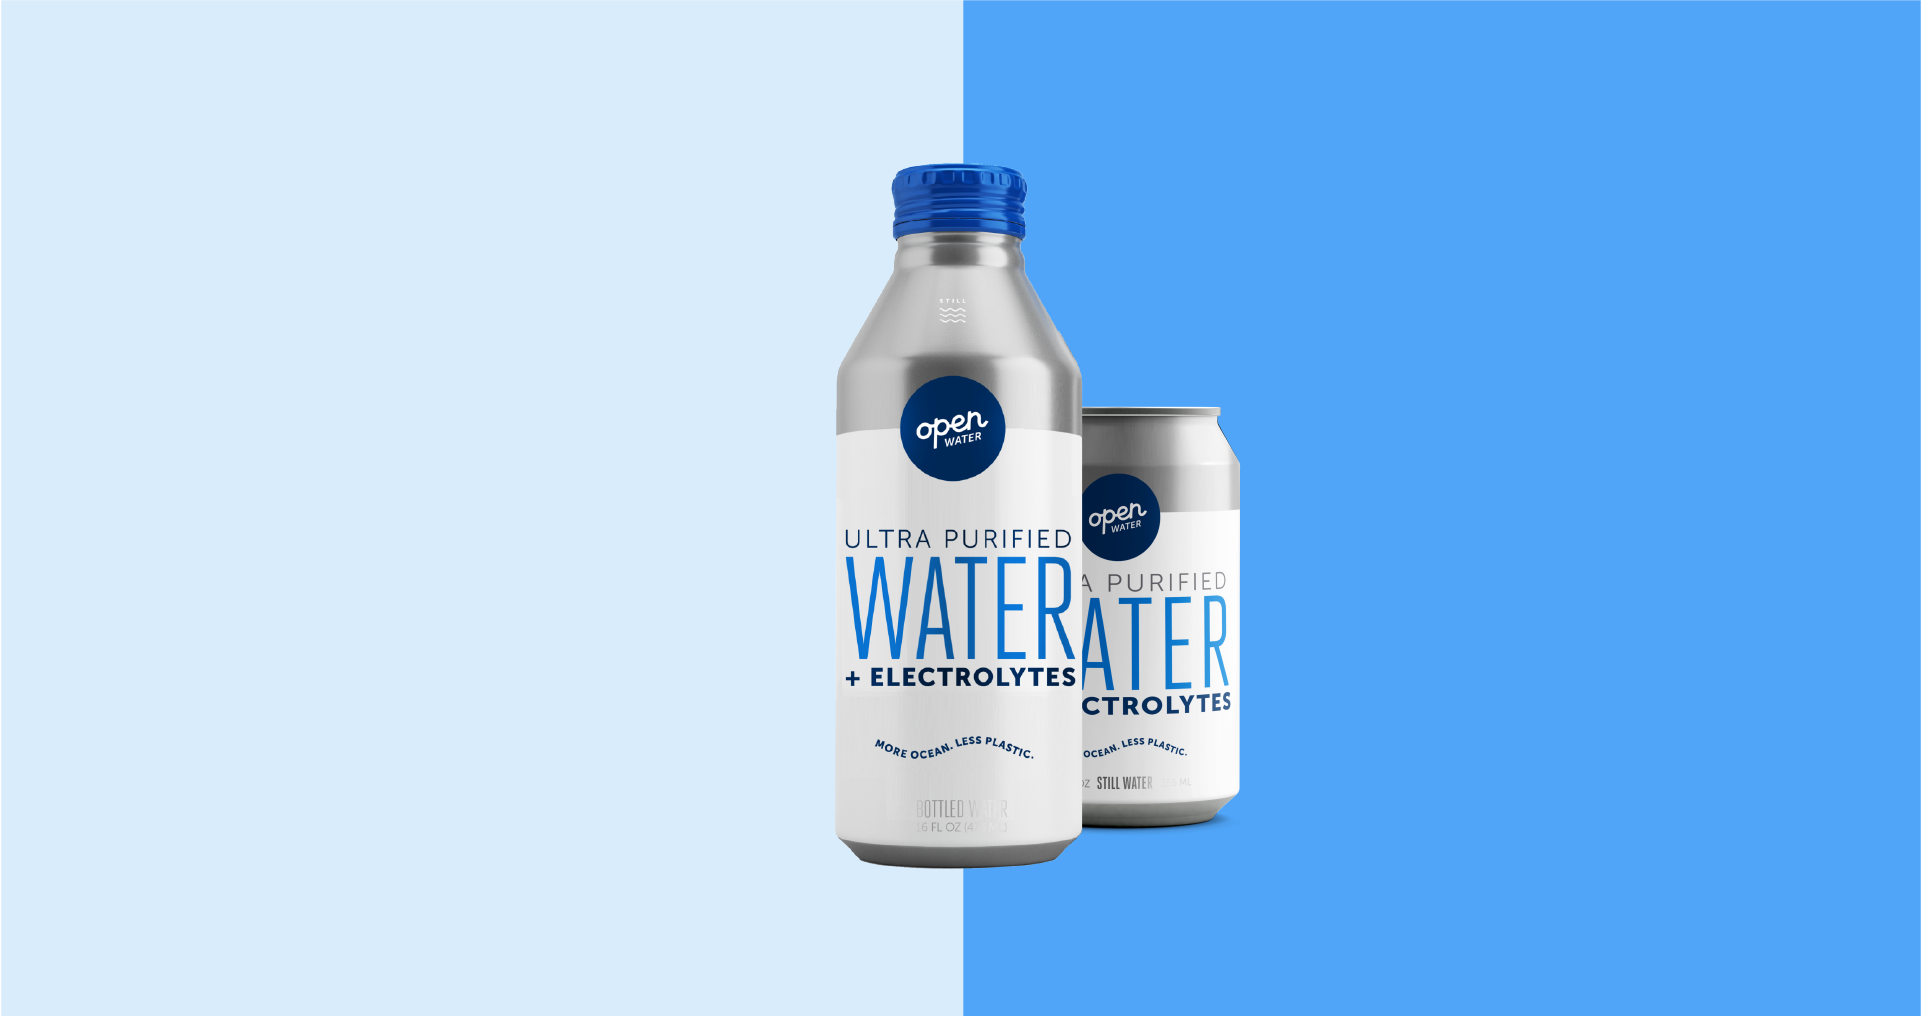 Open Water 16oz still water bottle and 12oz still water can